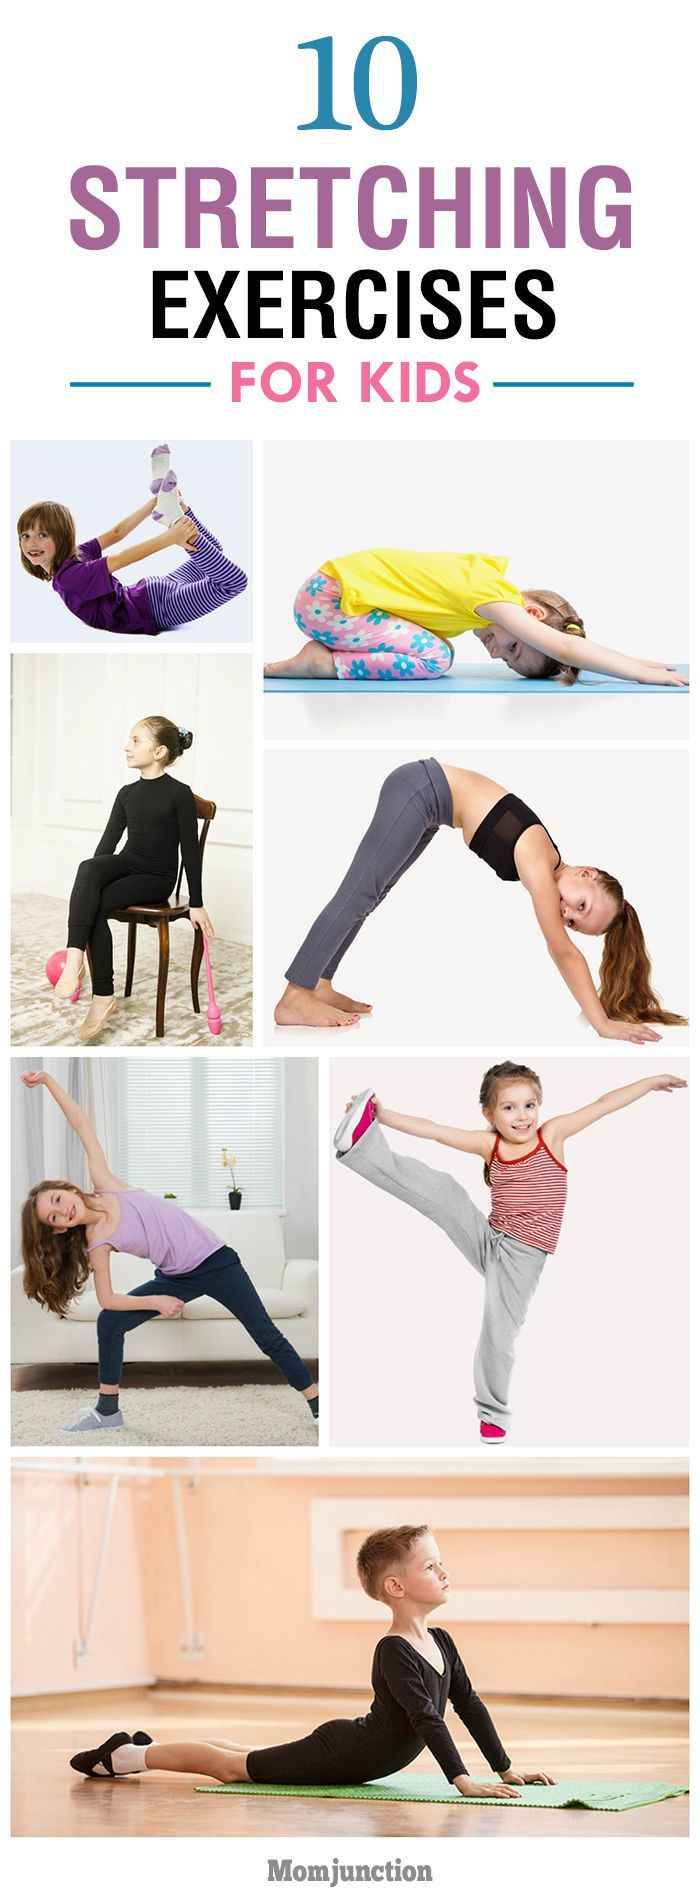 Top 10 Stretching Exercises For Kids: here are ten brilliant stretching exercises to boost your kid's energy levels and get him ready for exercise.